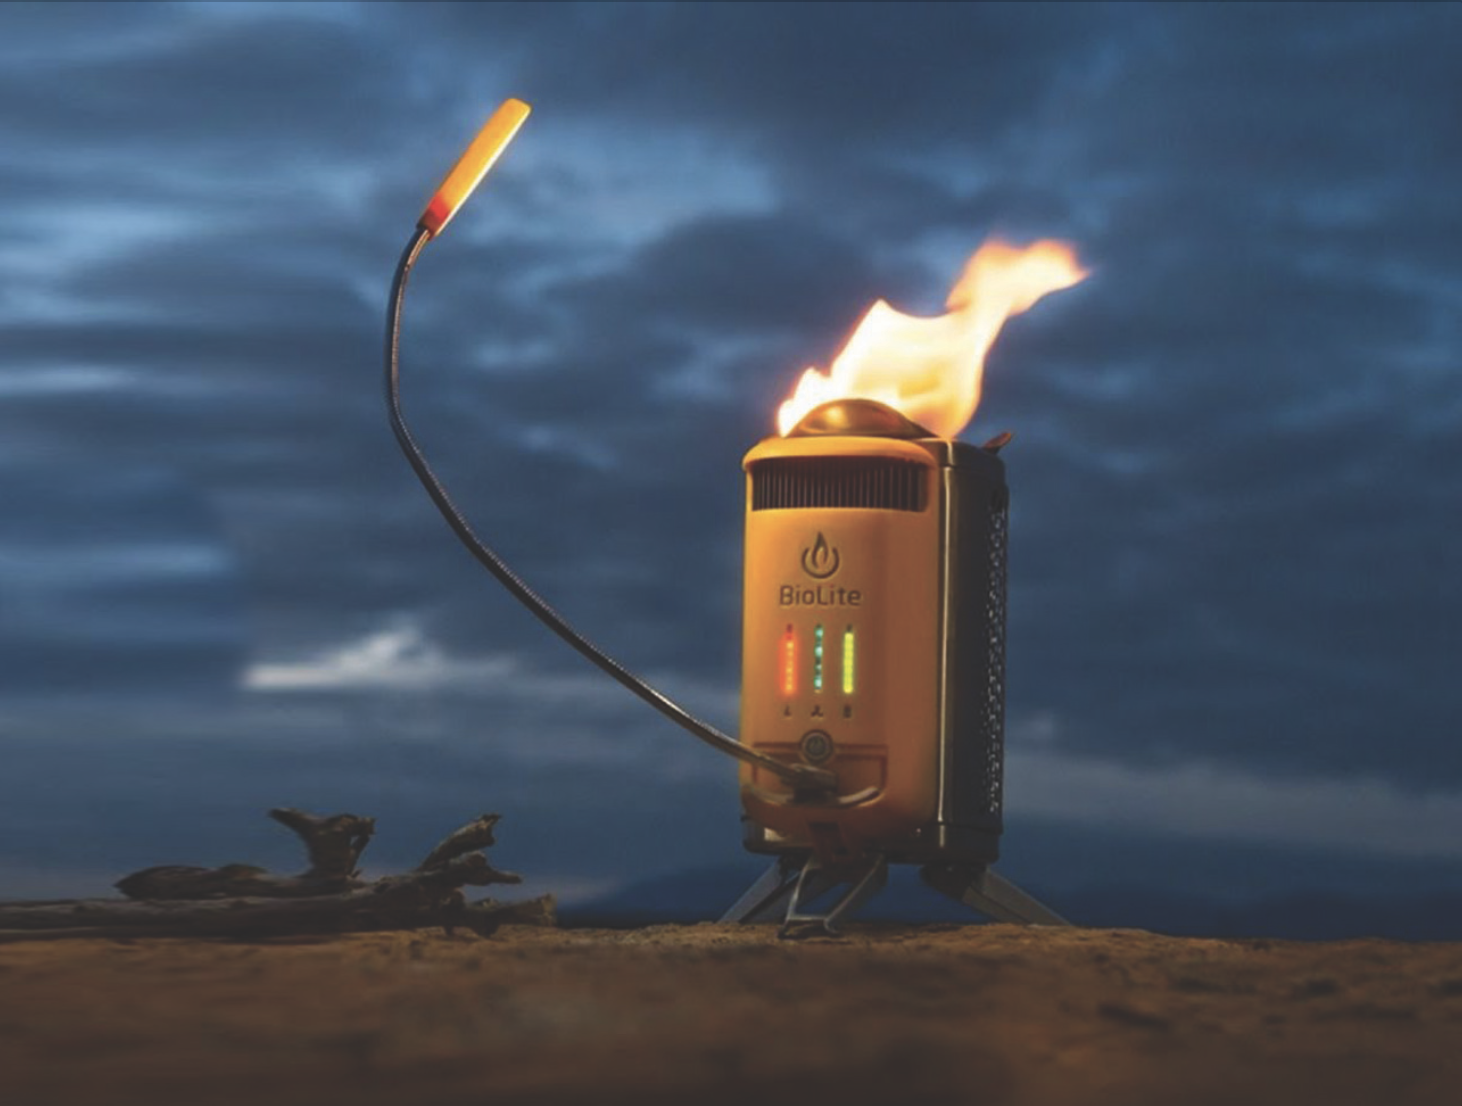 BioLite CampStove 2 - If you're planning to go camping on the beaches in Tarifa or exploring the vast landscapes Andalucia, the award-winning BioLite CampStove 2 is a handy gadget to take with you. This wood burning camp stove creates a smokeless fire that can cook meals and boil water in minutes, while turning its heat into useable electricity – how cool is that! So, while your foods cooking, you can be charging your phone or laptop using electricity that's been converted from the fire.The CampStove 2 can generate 5V power through its USB output and it burns any renewable sources of wood like sticks and twigs. The CampStove is easy to use and comes with integrated battery and LED dashboard so you can set the fan speed and get real-time feedback on fire-strength. https://amzn.to/2Y2E8dw